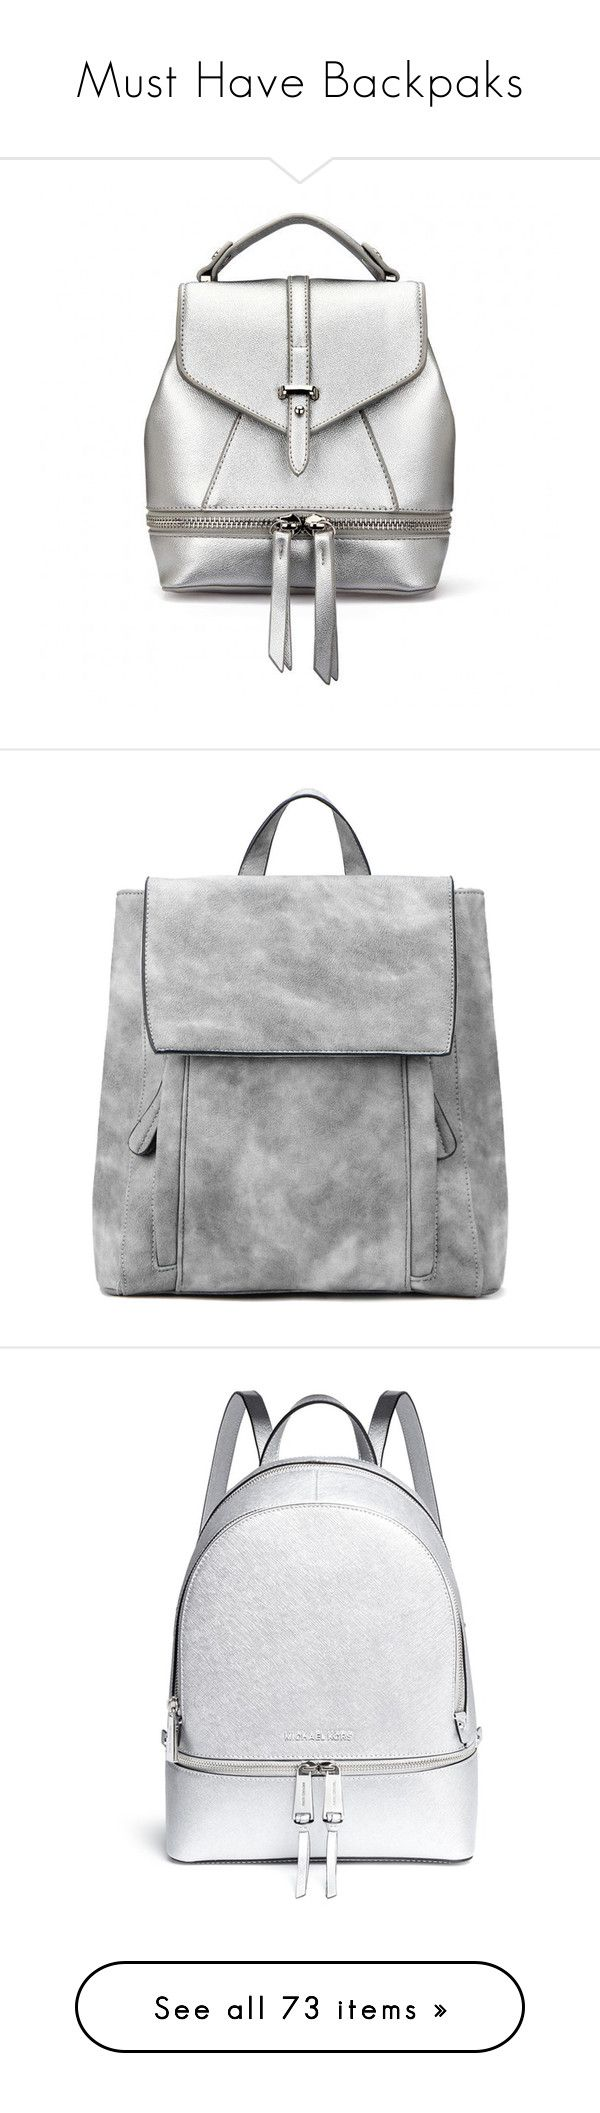 """Must Have Backpaks"" by keepfashion92 ❤ liked on Polyvore featuring MustHave, backpack, itbag, bags, backpacks, yoins, bolsas, silver, vegan backpack and silver bag"